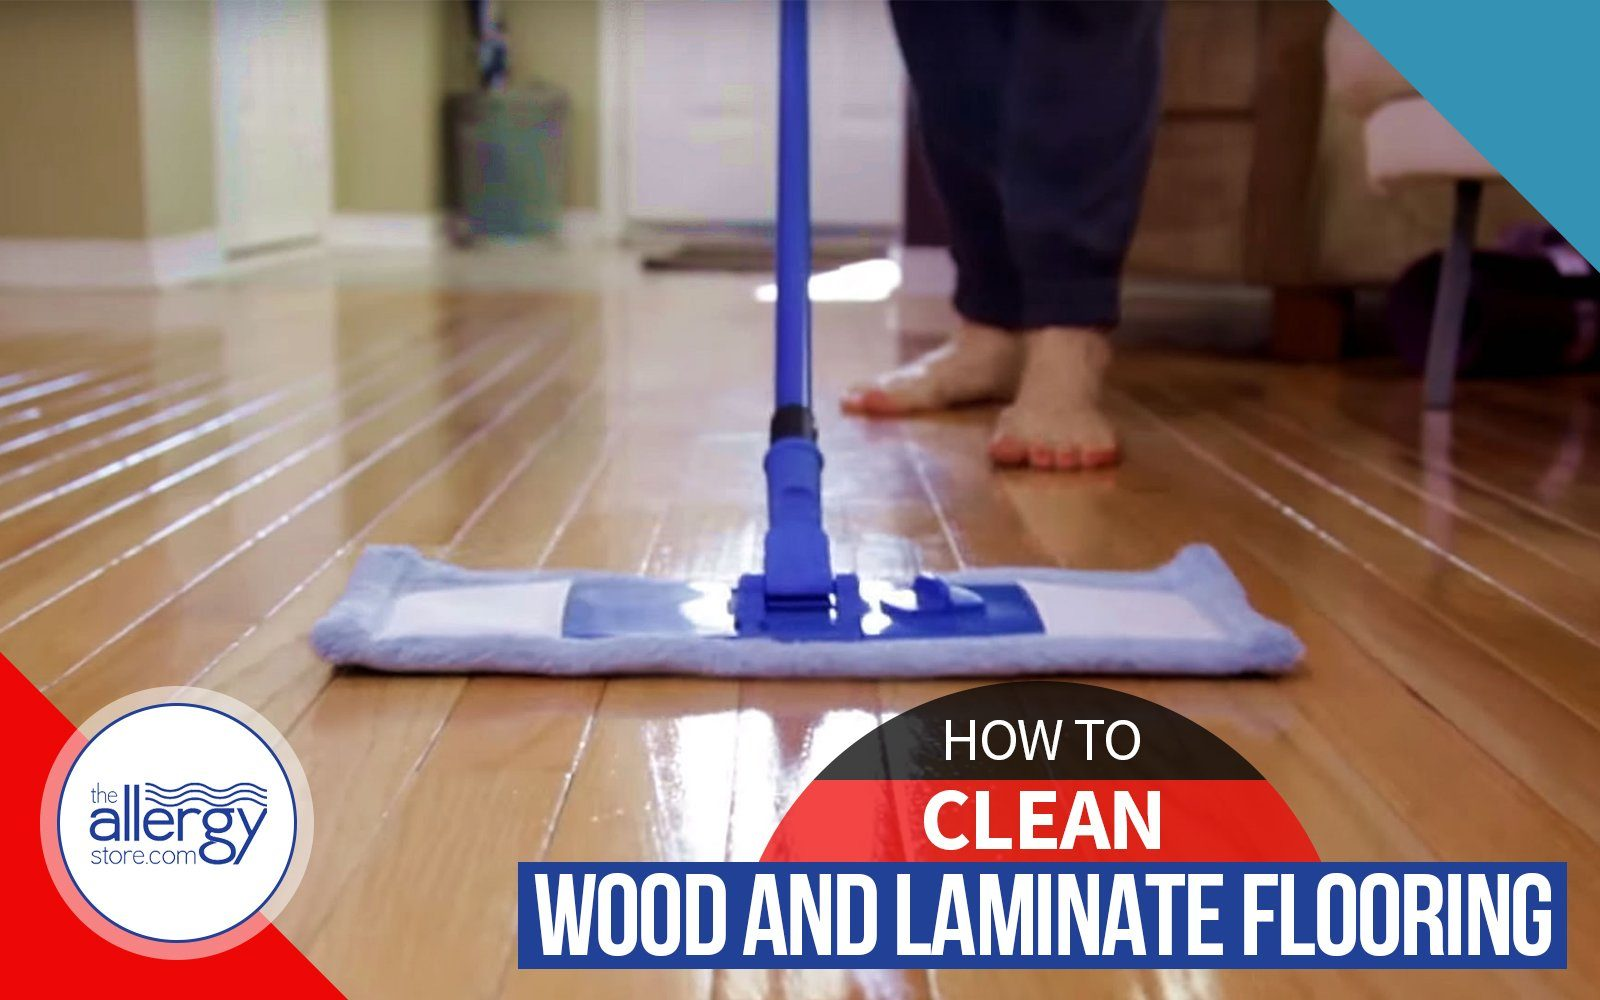 How to Clean Wood and Laminate Flooring